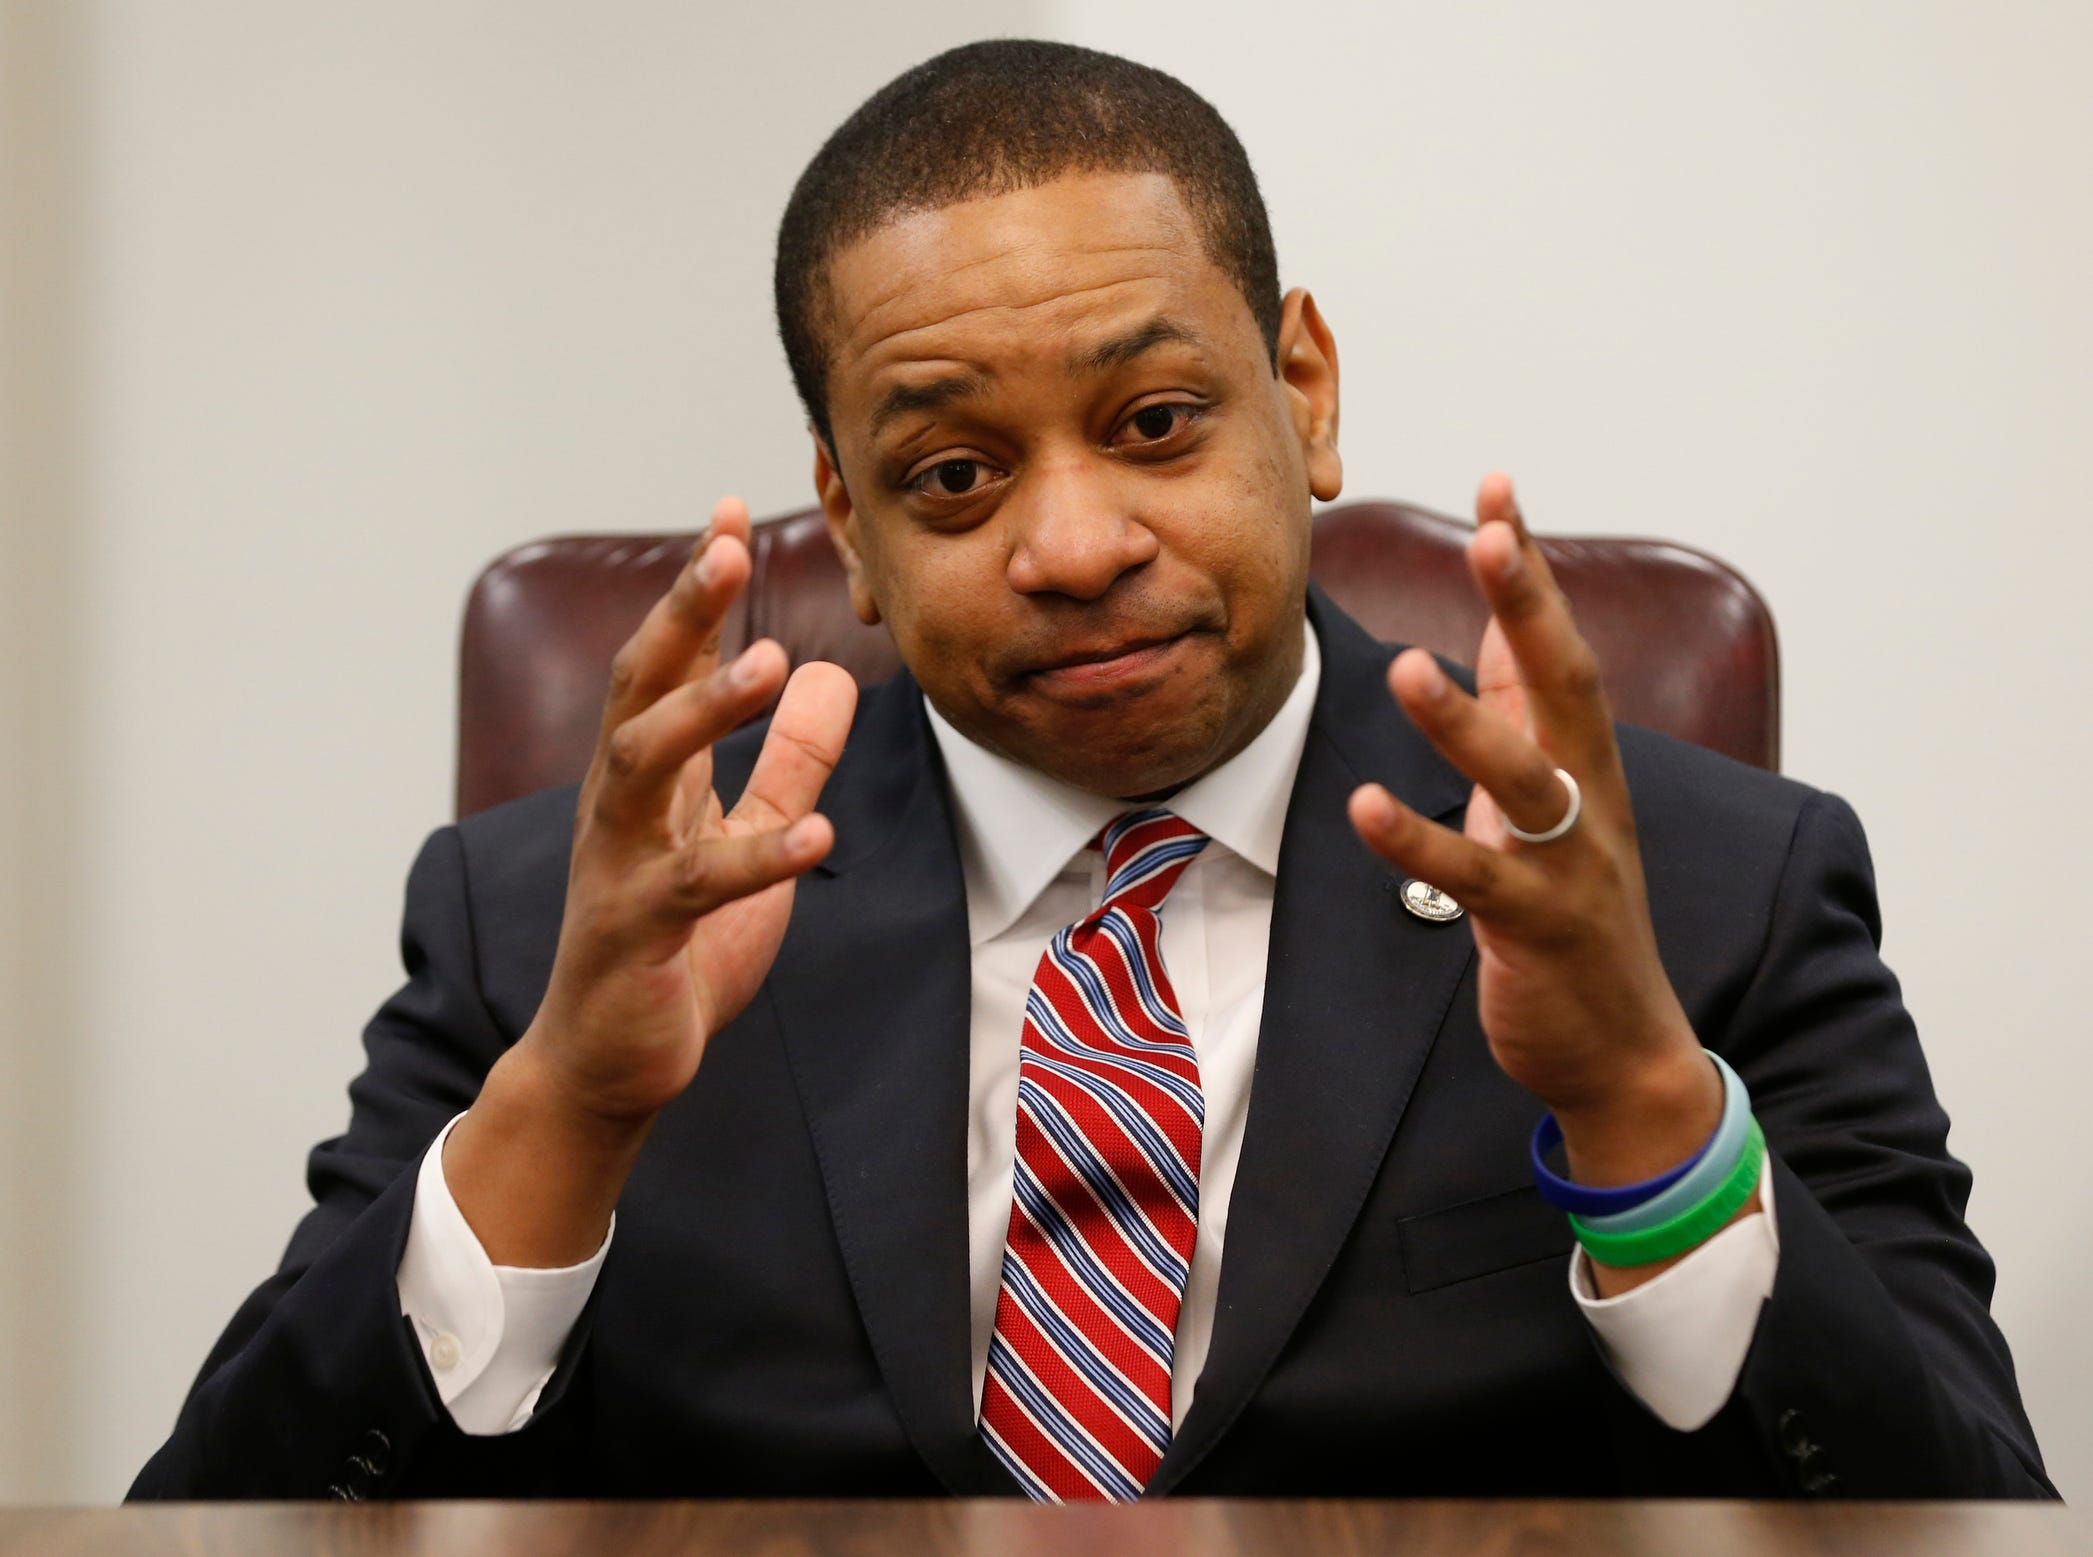 Virginia Lt. Gov. Justin Fairfax speaks during an interview in his office in Richmond, Va., Feb. 2, 2019, about the controversial photo in Gov. Ralph Northam's yearbook page.